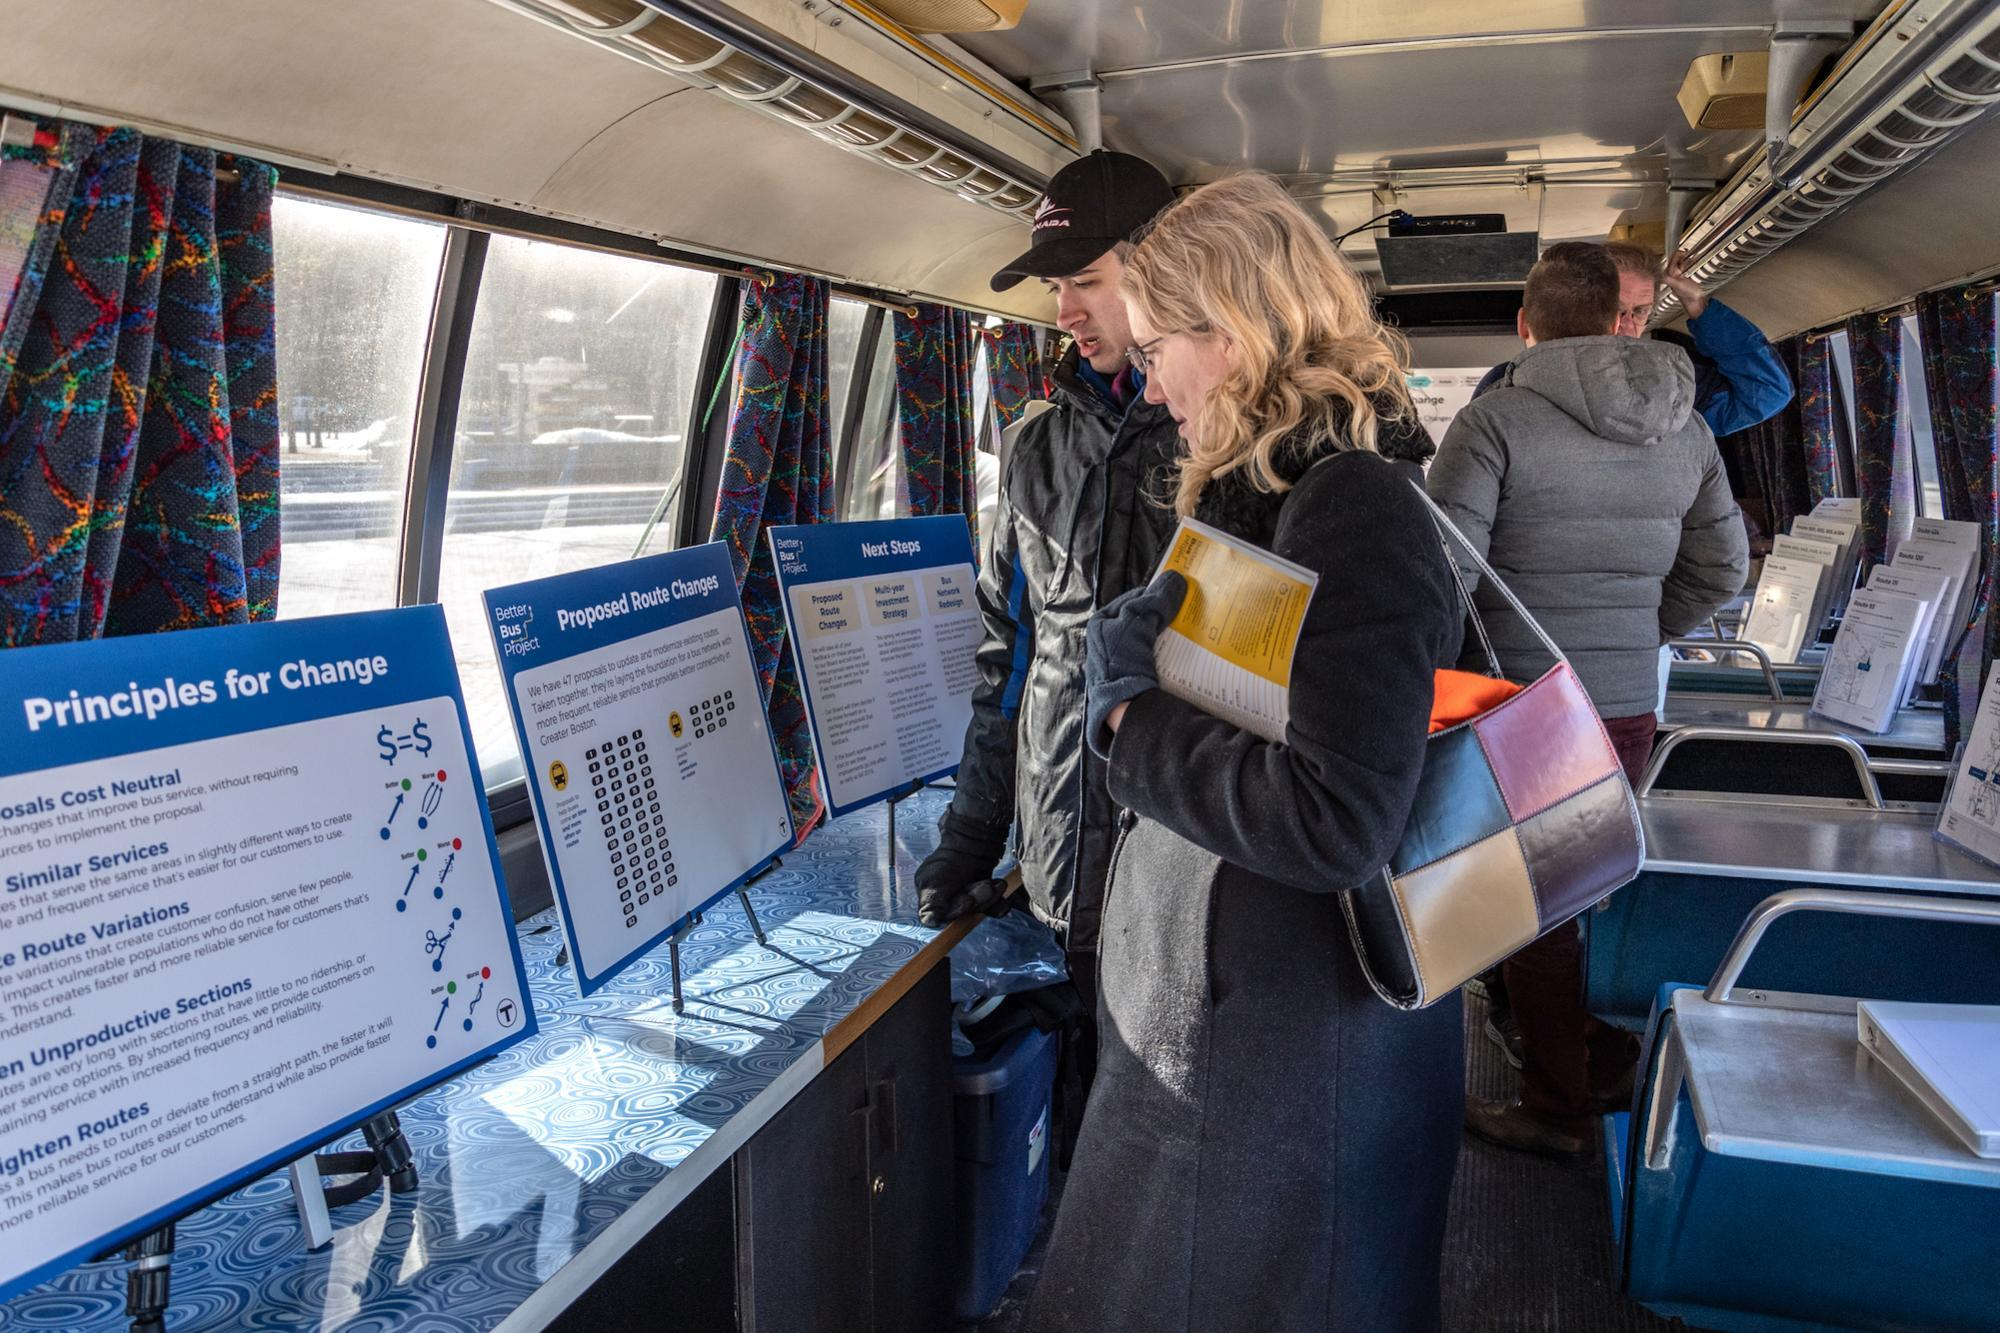 Members of the public browse inside a retrofitted bus with tables featuring informational posters and flyers about the Better Bus Project.